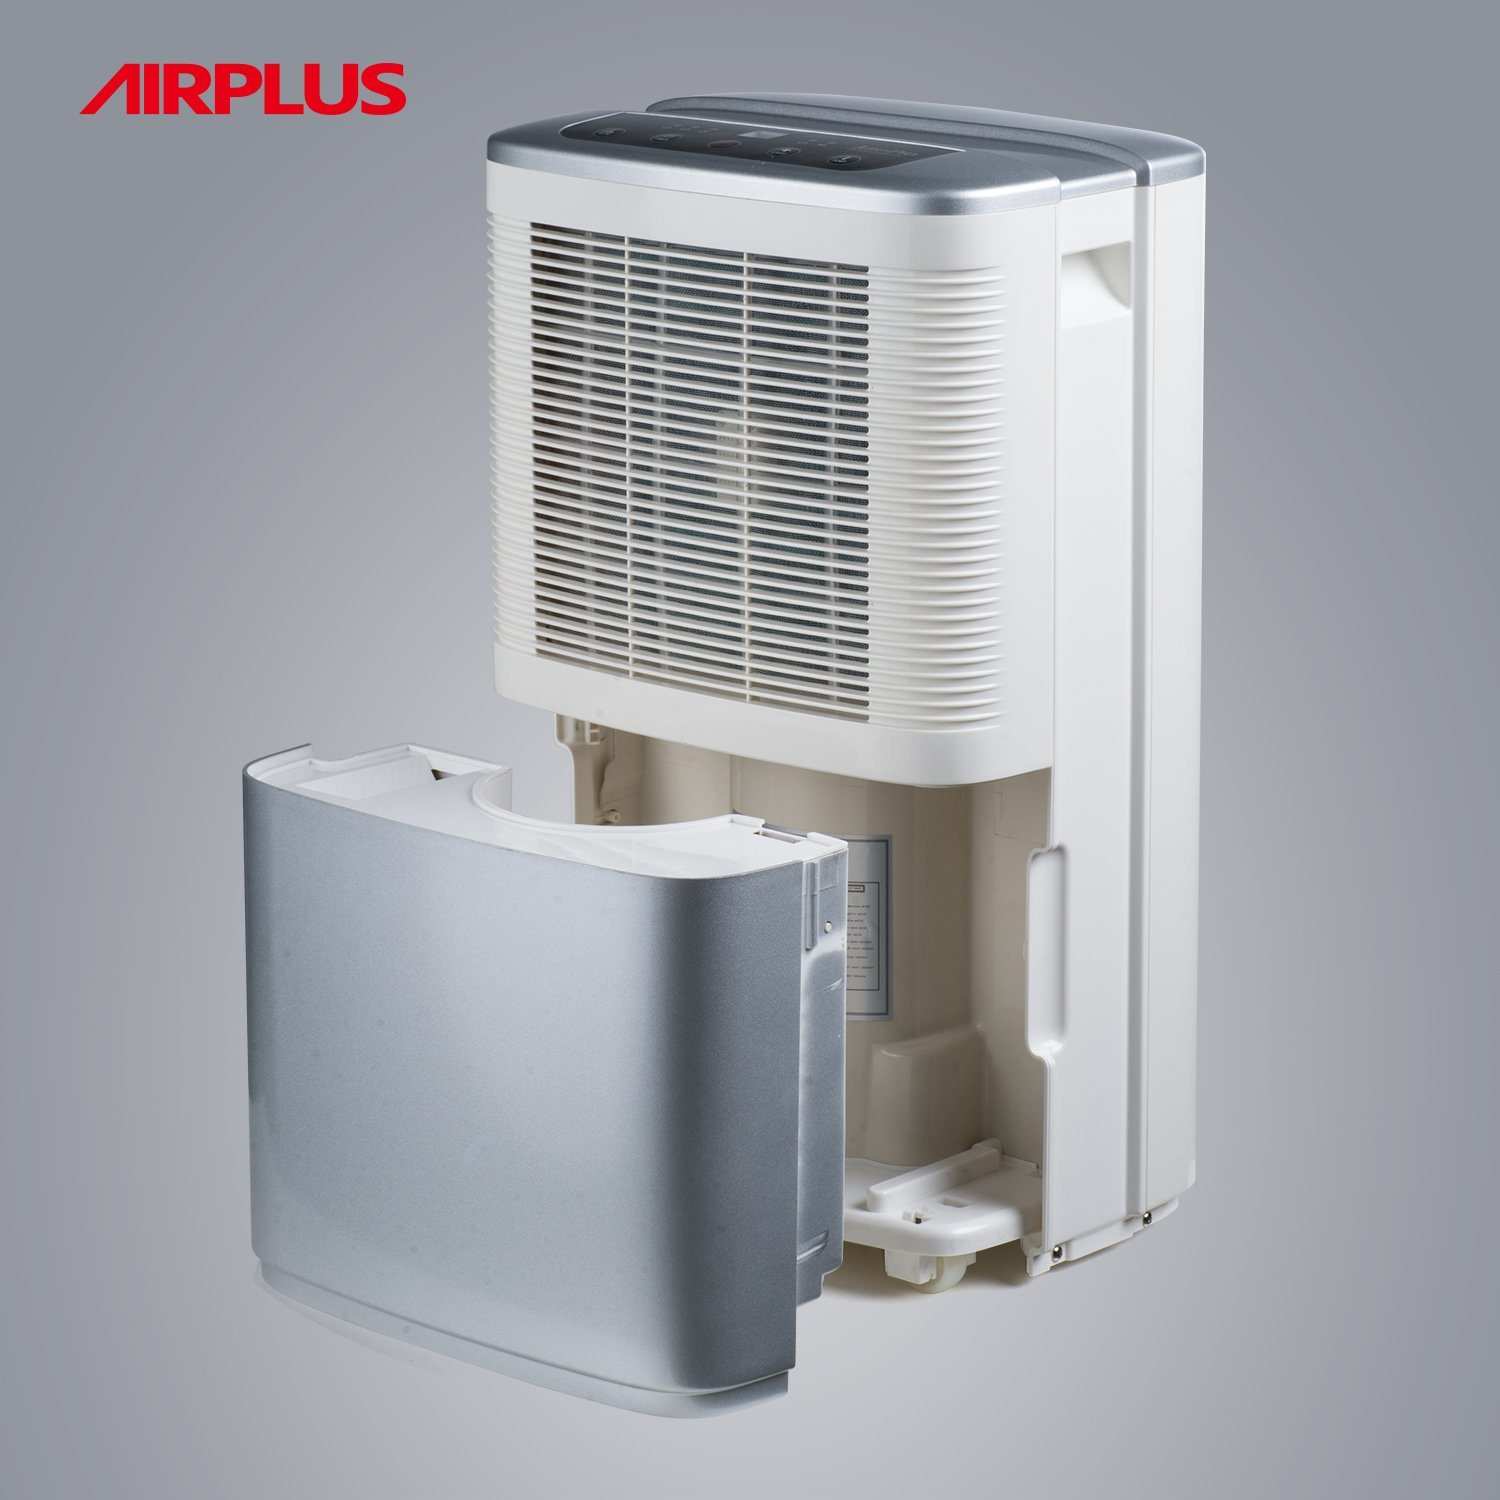 LED Display Home Dehumidifier with Continuous Drainage